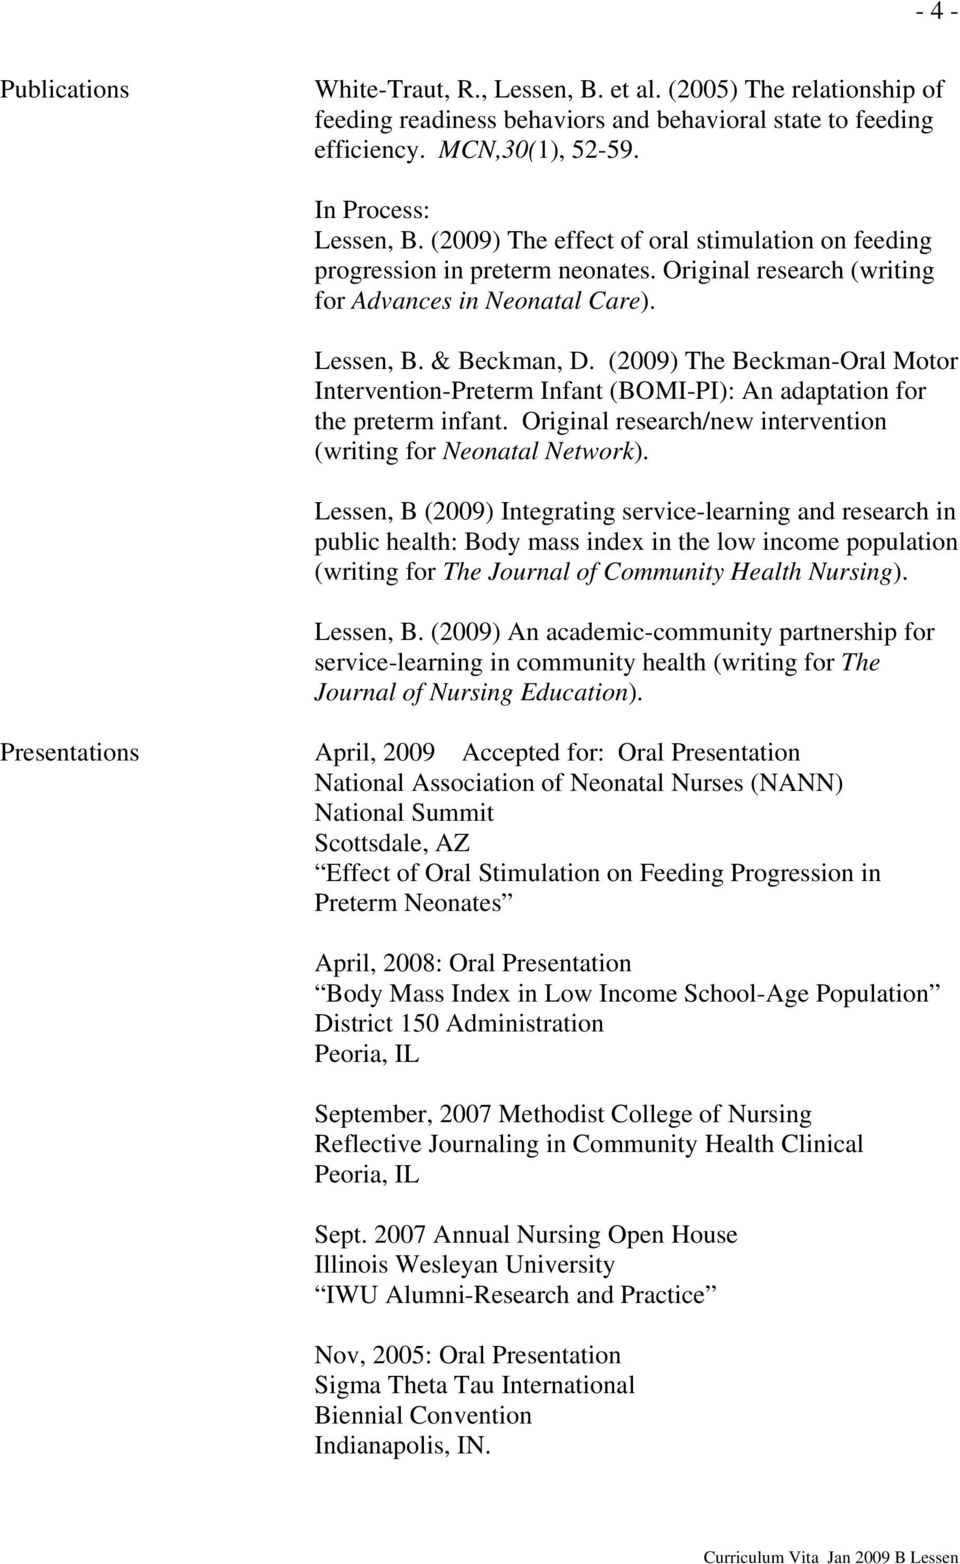 (2009) The Beckman-Oral Motor Intervention-Preterm Infant (BOMI-PI): An adaptation for the preterm infant. Original research/new intervention (writing for Neonatal Network).